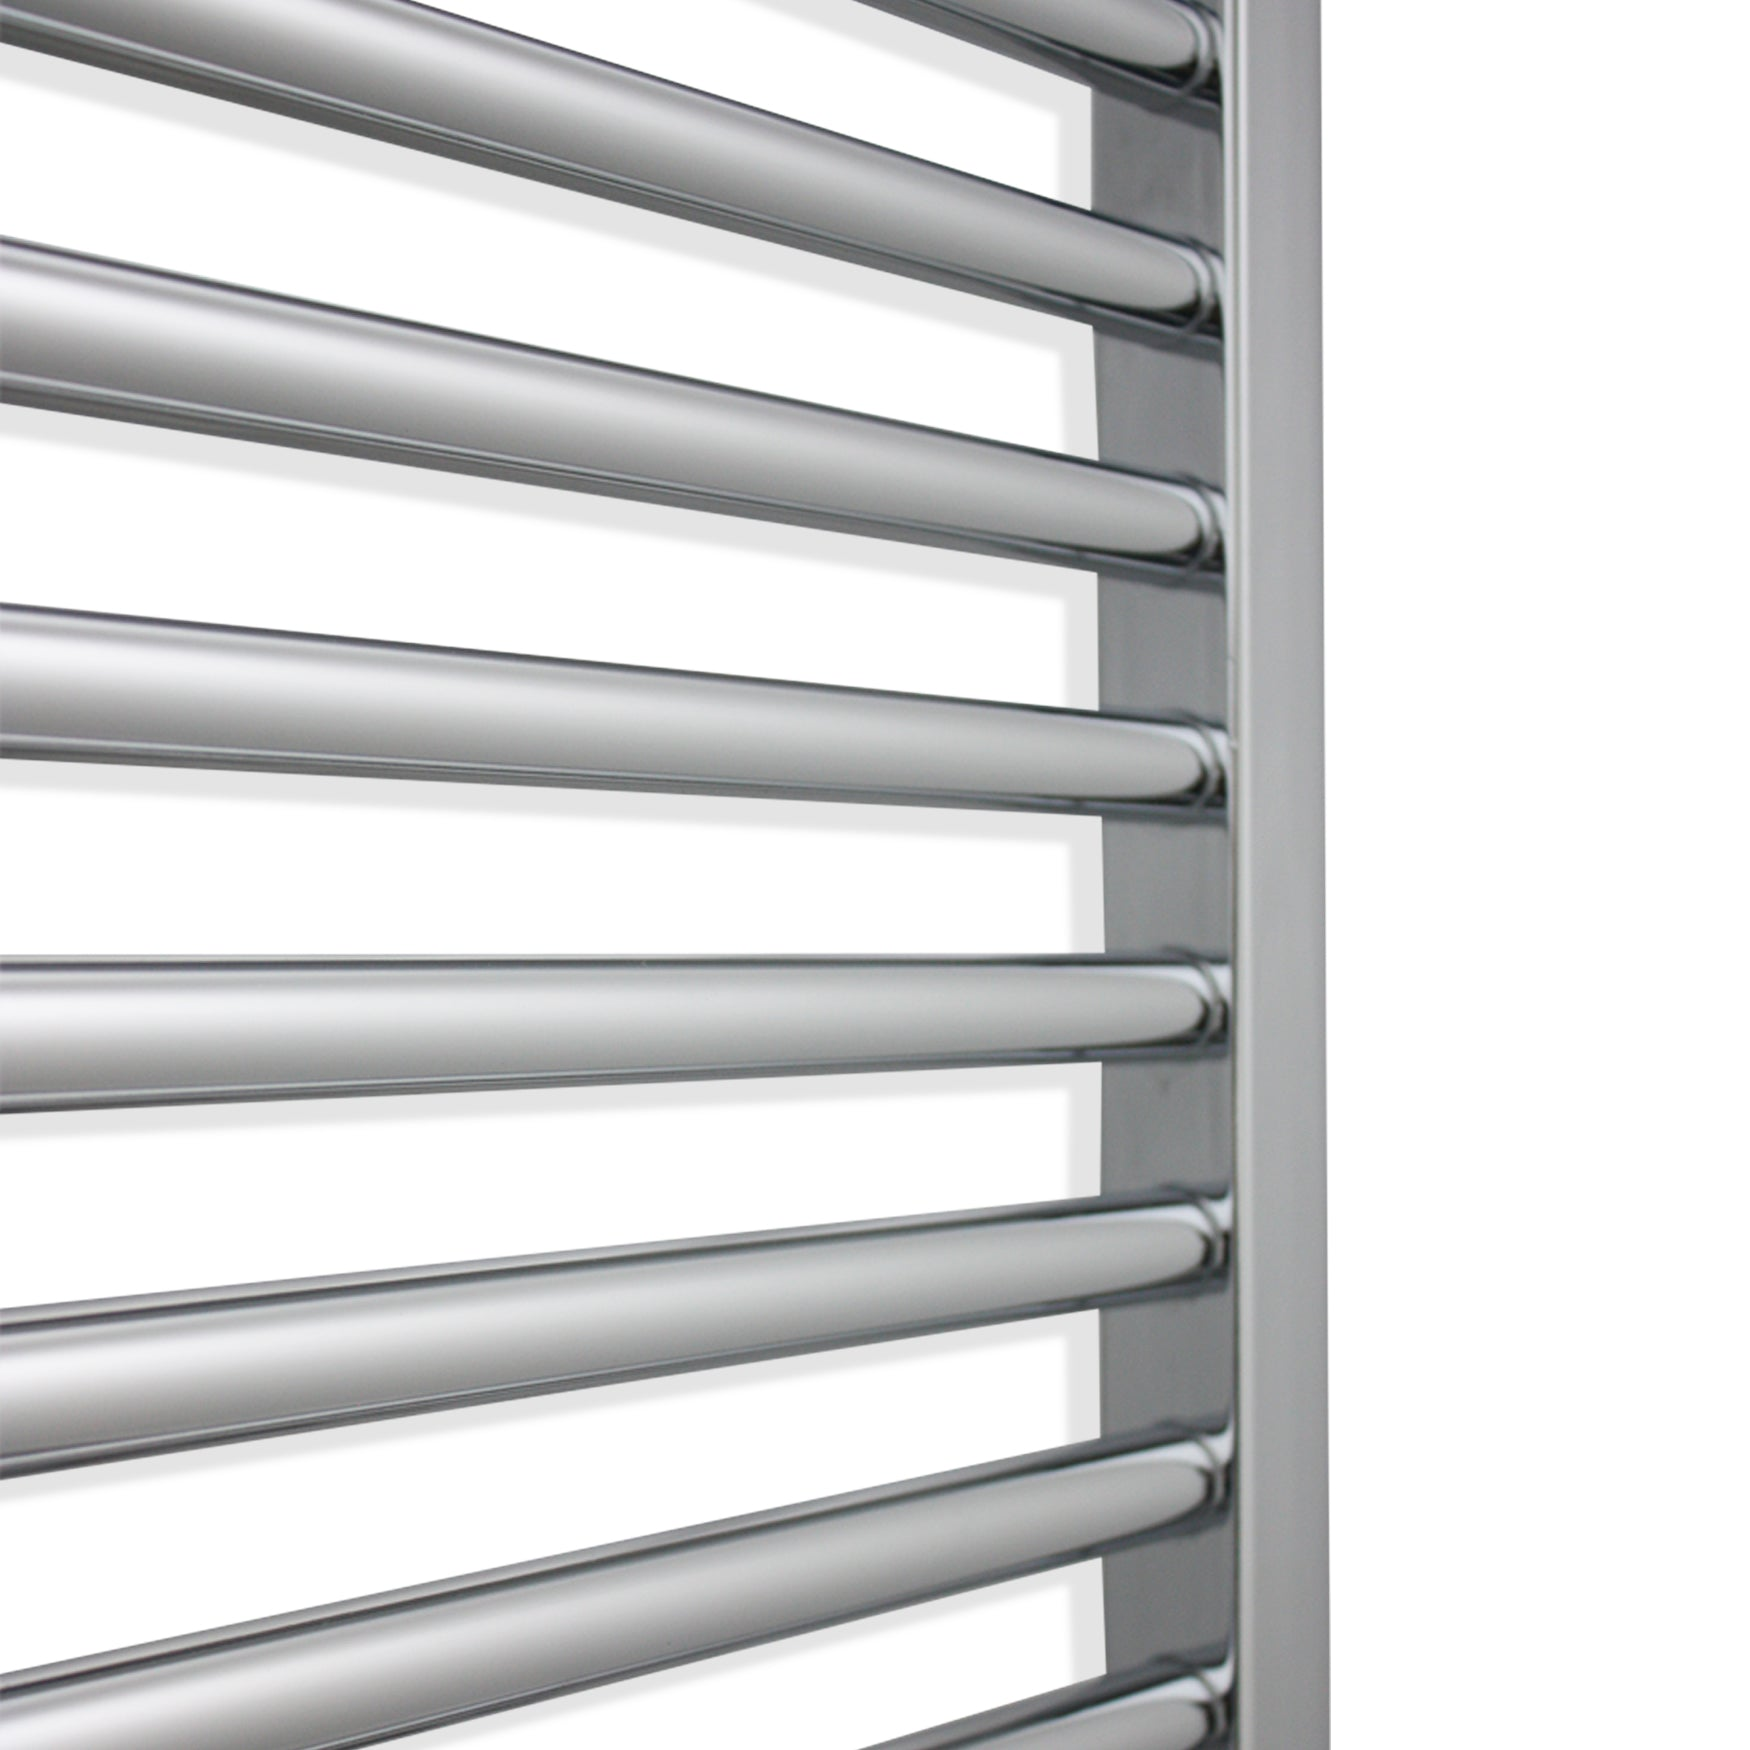 400mm Wide 600mm High Flat Or Curved Chrome Pre-Filled Electric Heated Towel Rail Radiator HTR